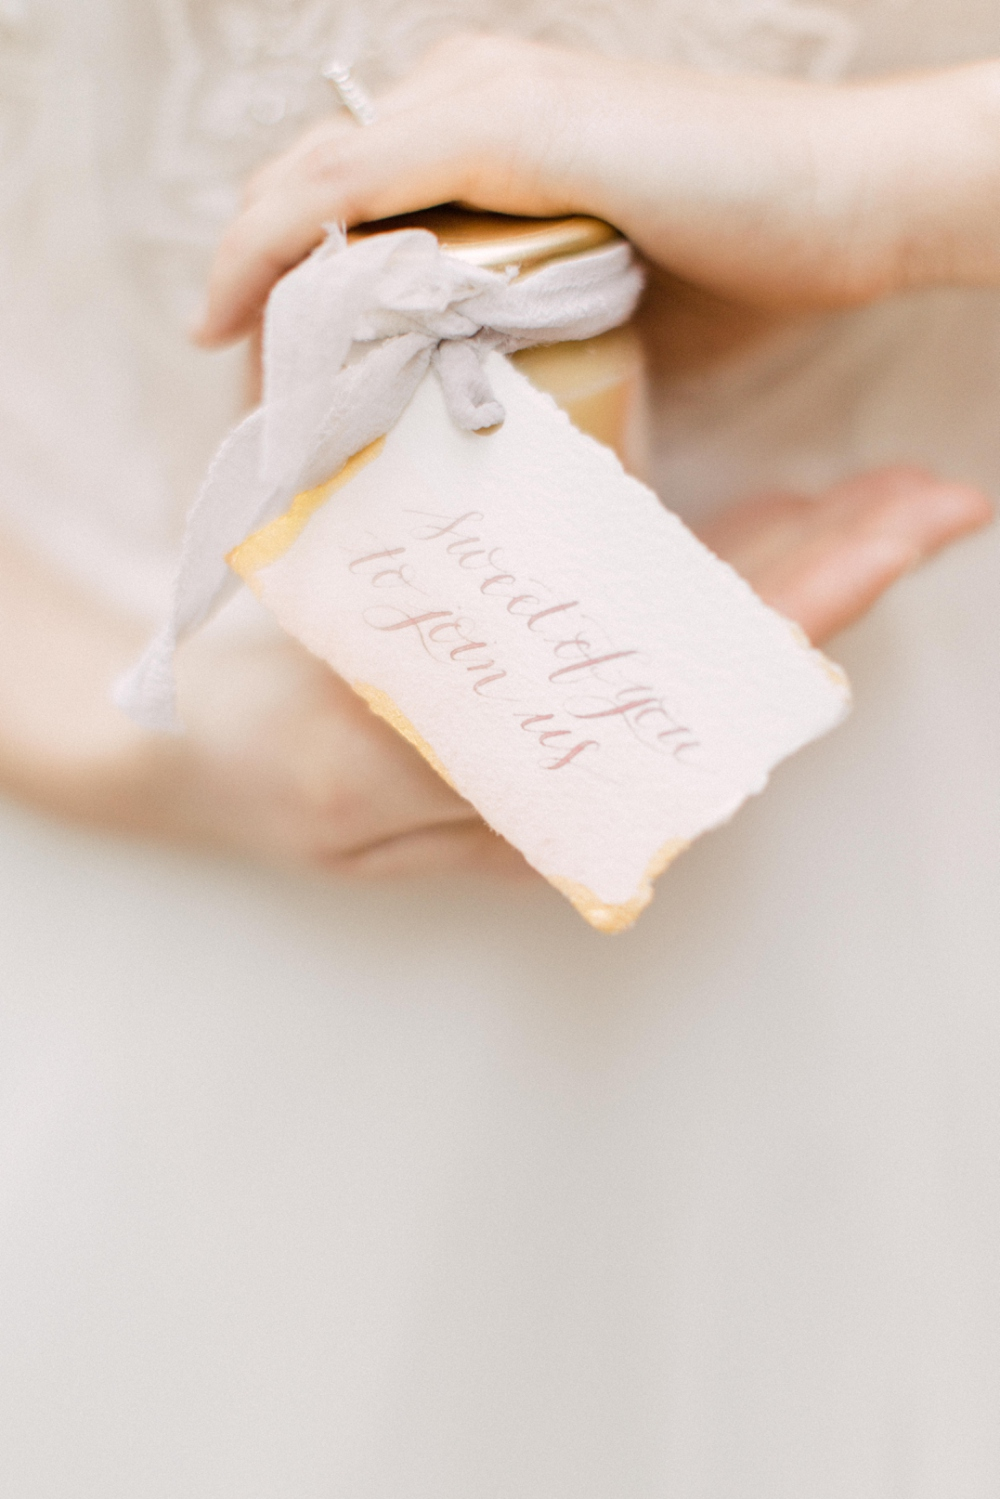 Calgary Banff Wedding Calligrapher Debbie Wong favor tag.jpg